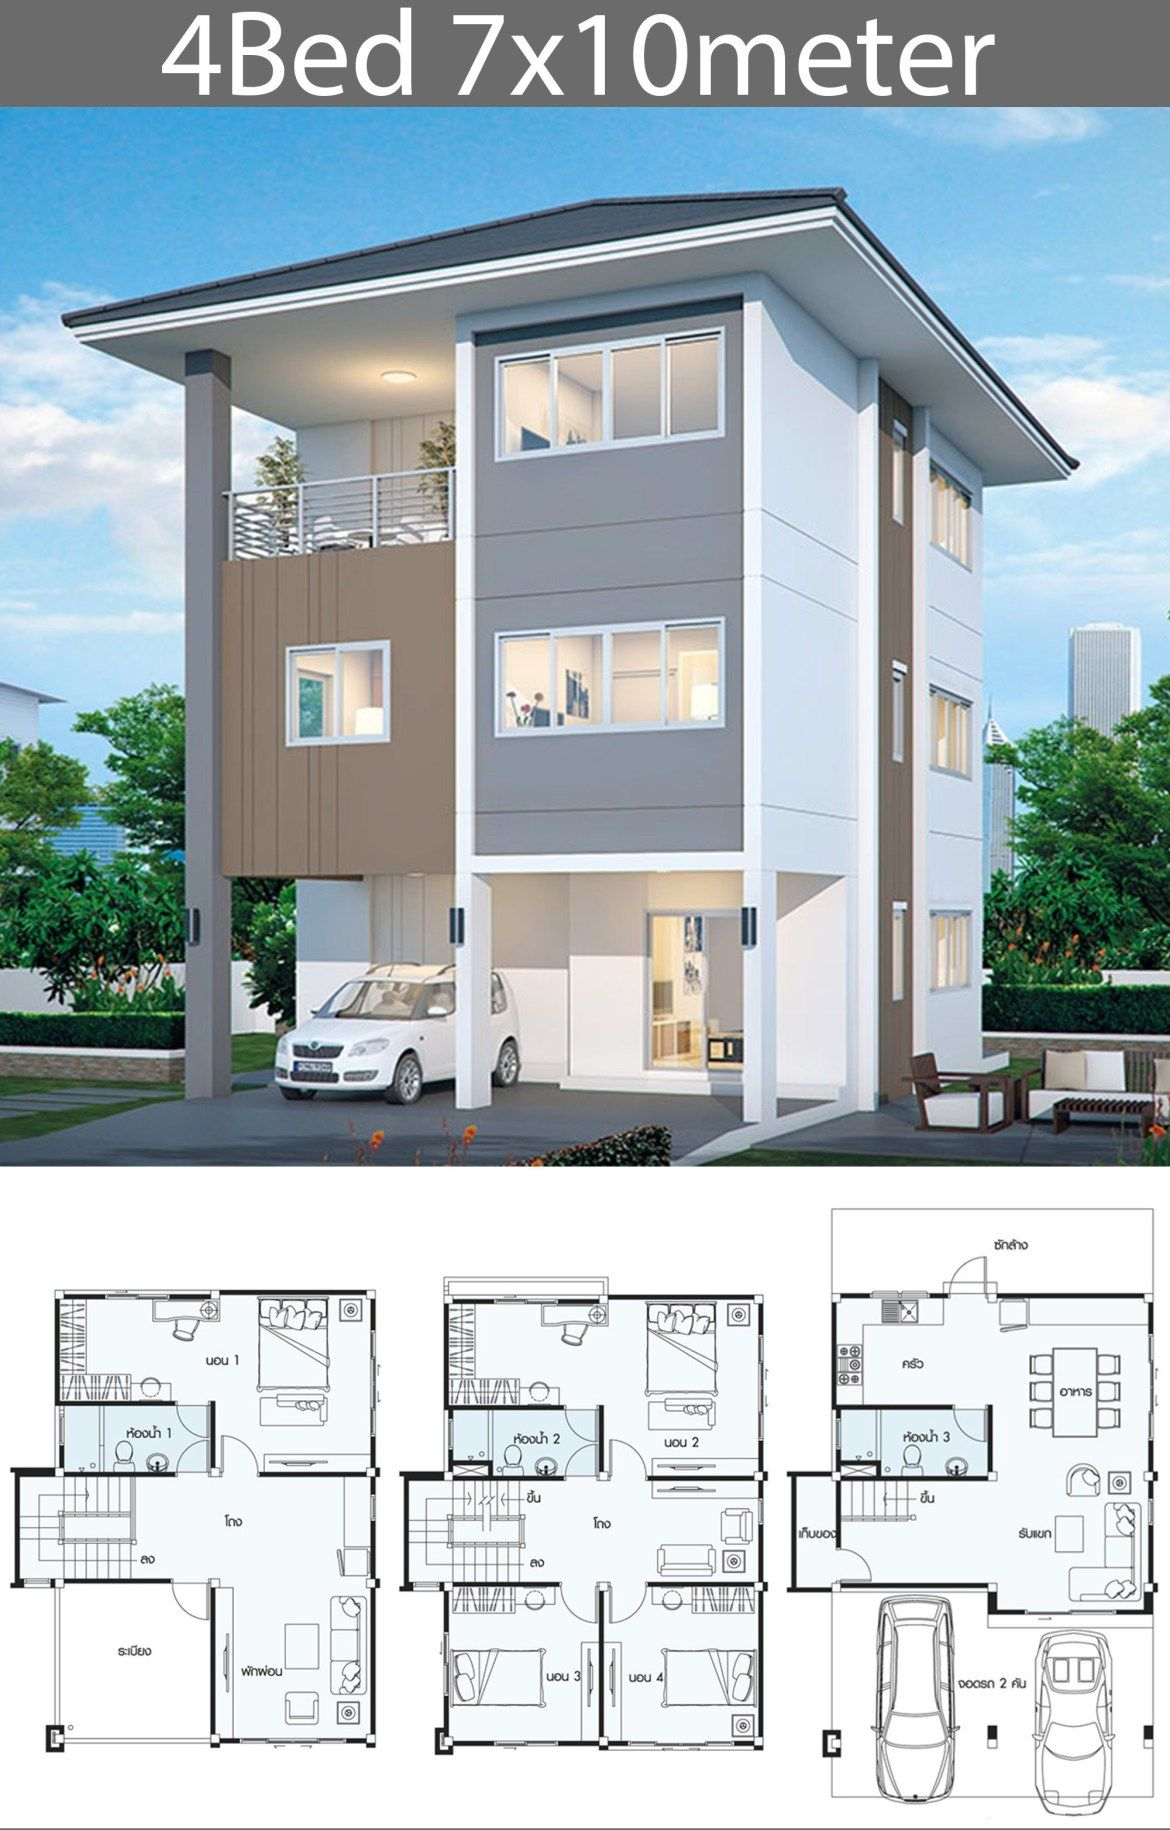 5 Ideas Home Design Plan 7x10m Samphoas Plansearch Sims House Plans Town House Floor Plan Home Design Plan